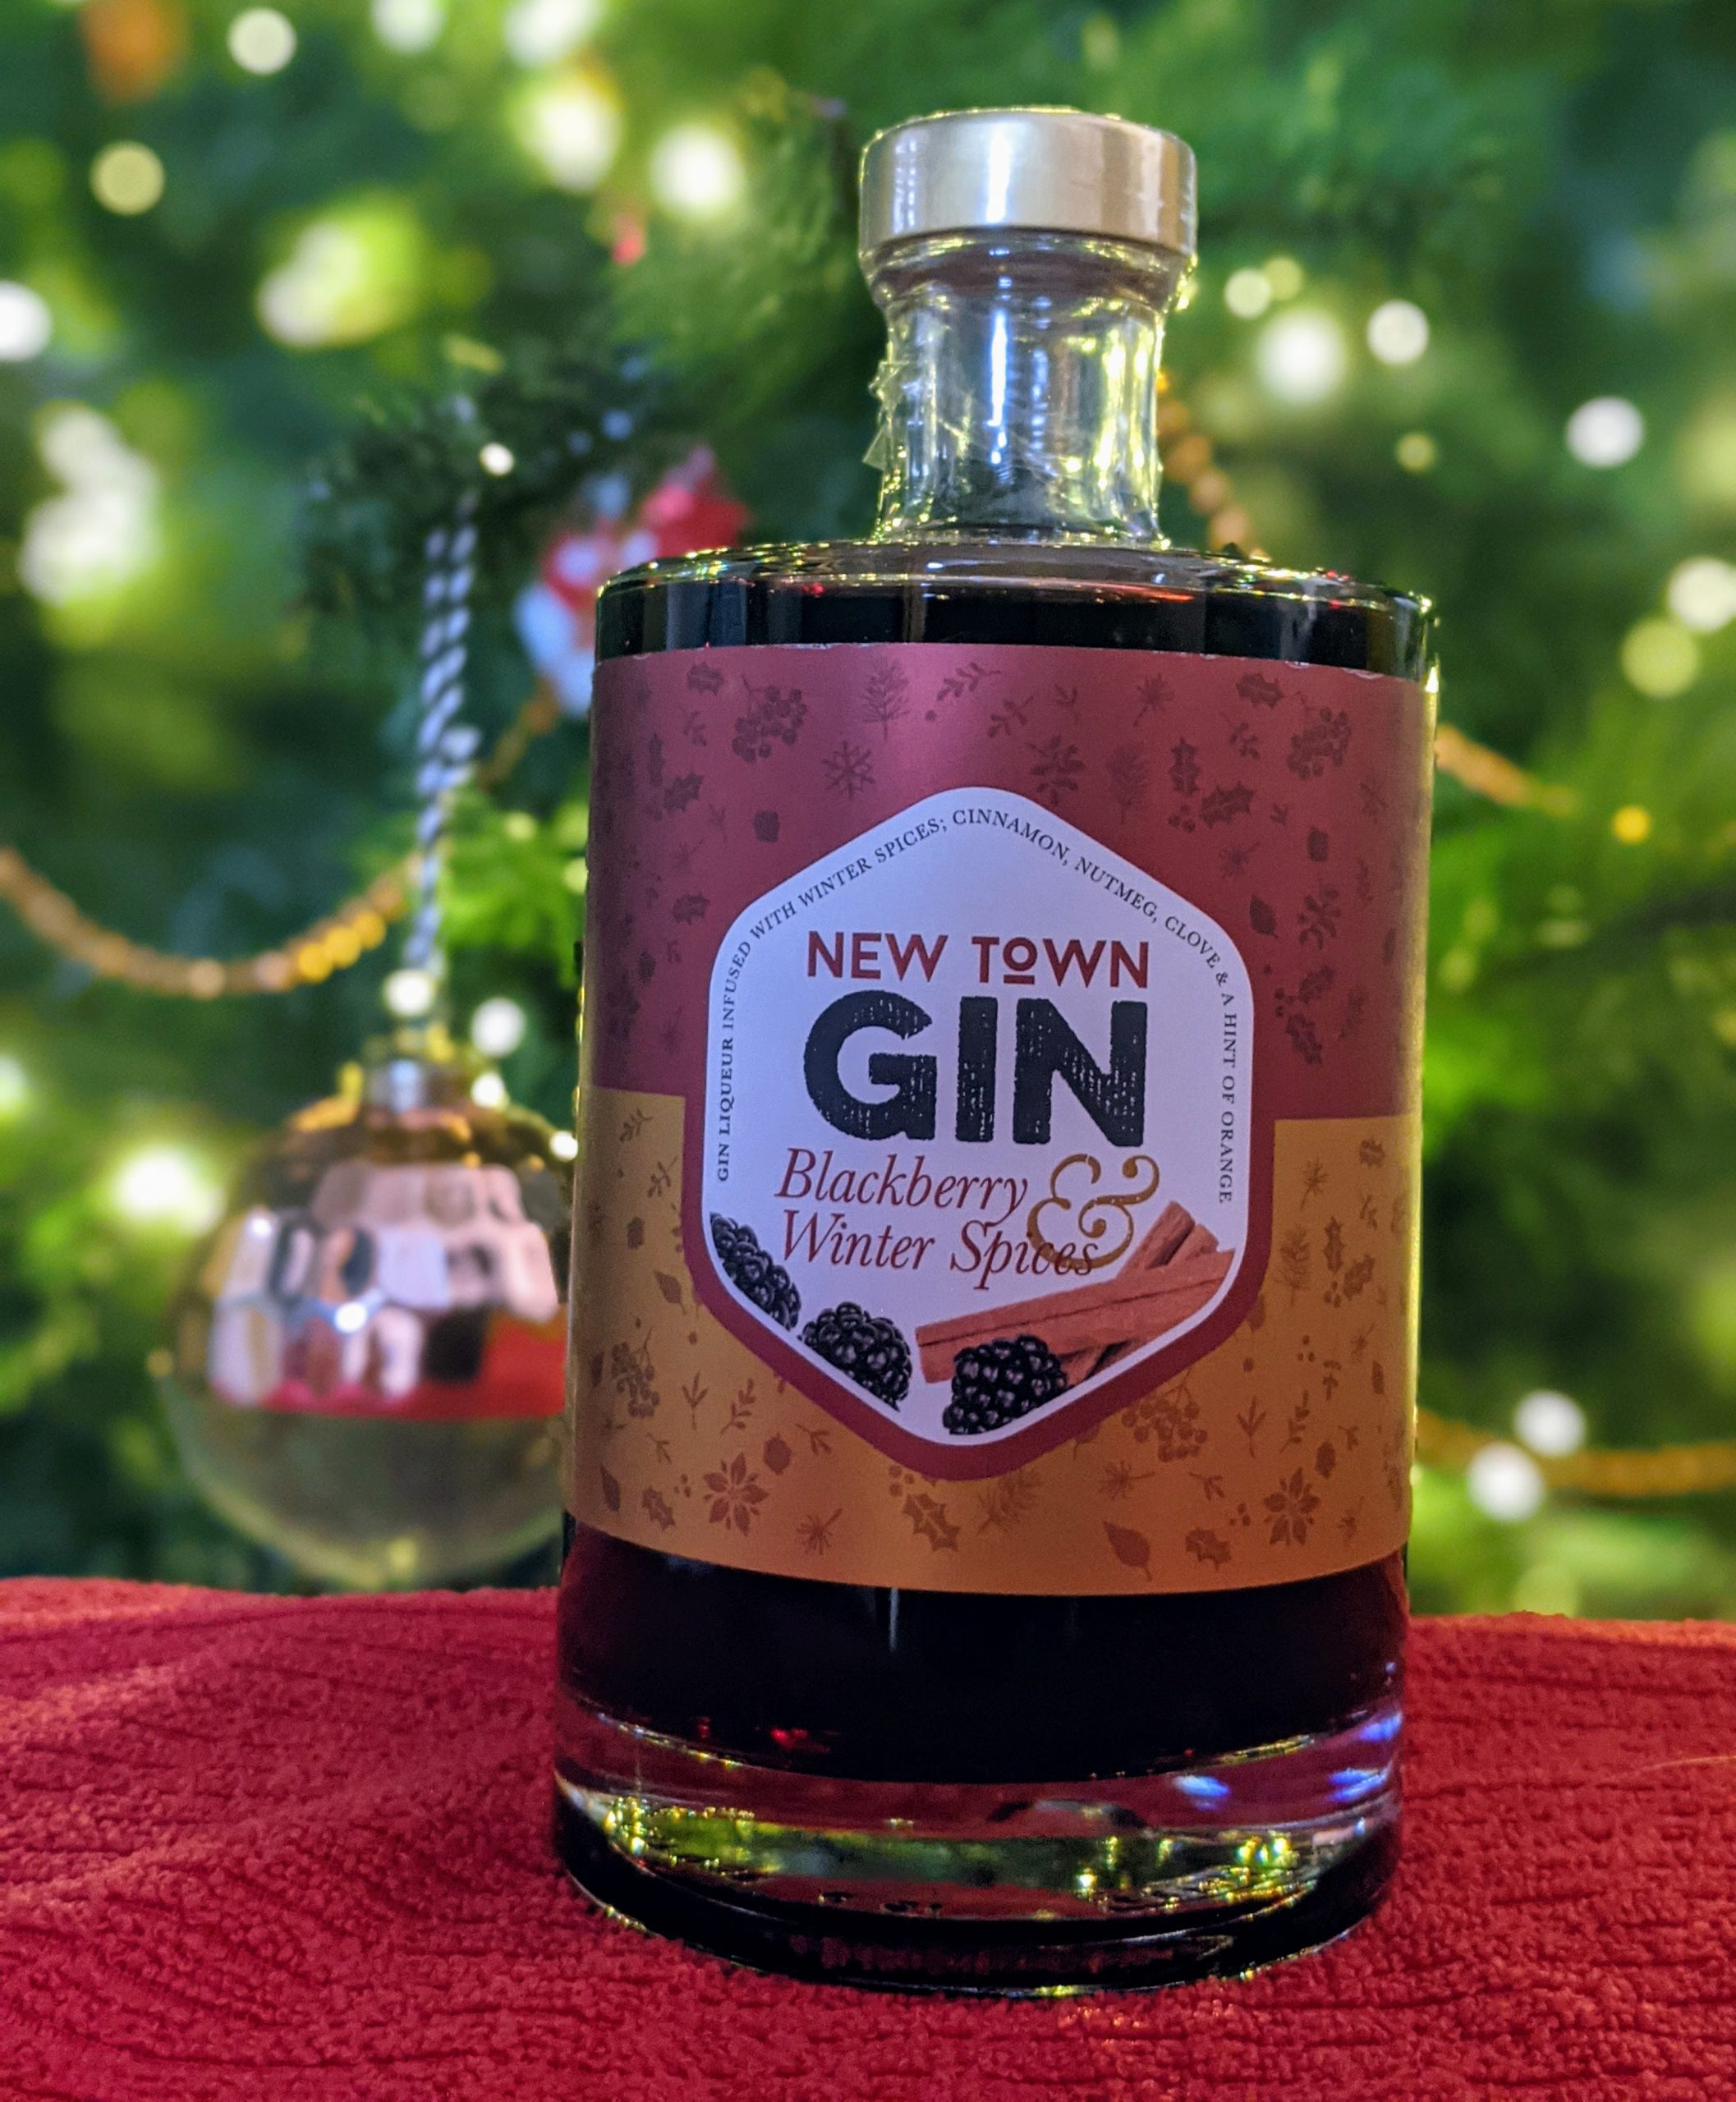 A bottle of New Town Gin Blackberry and Winter Spice Liquer in front of a Christmas tree